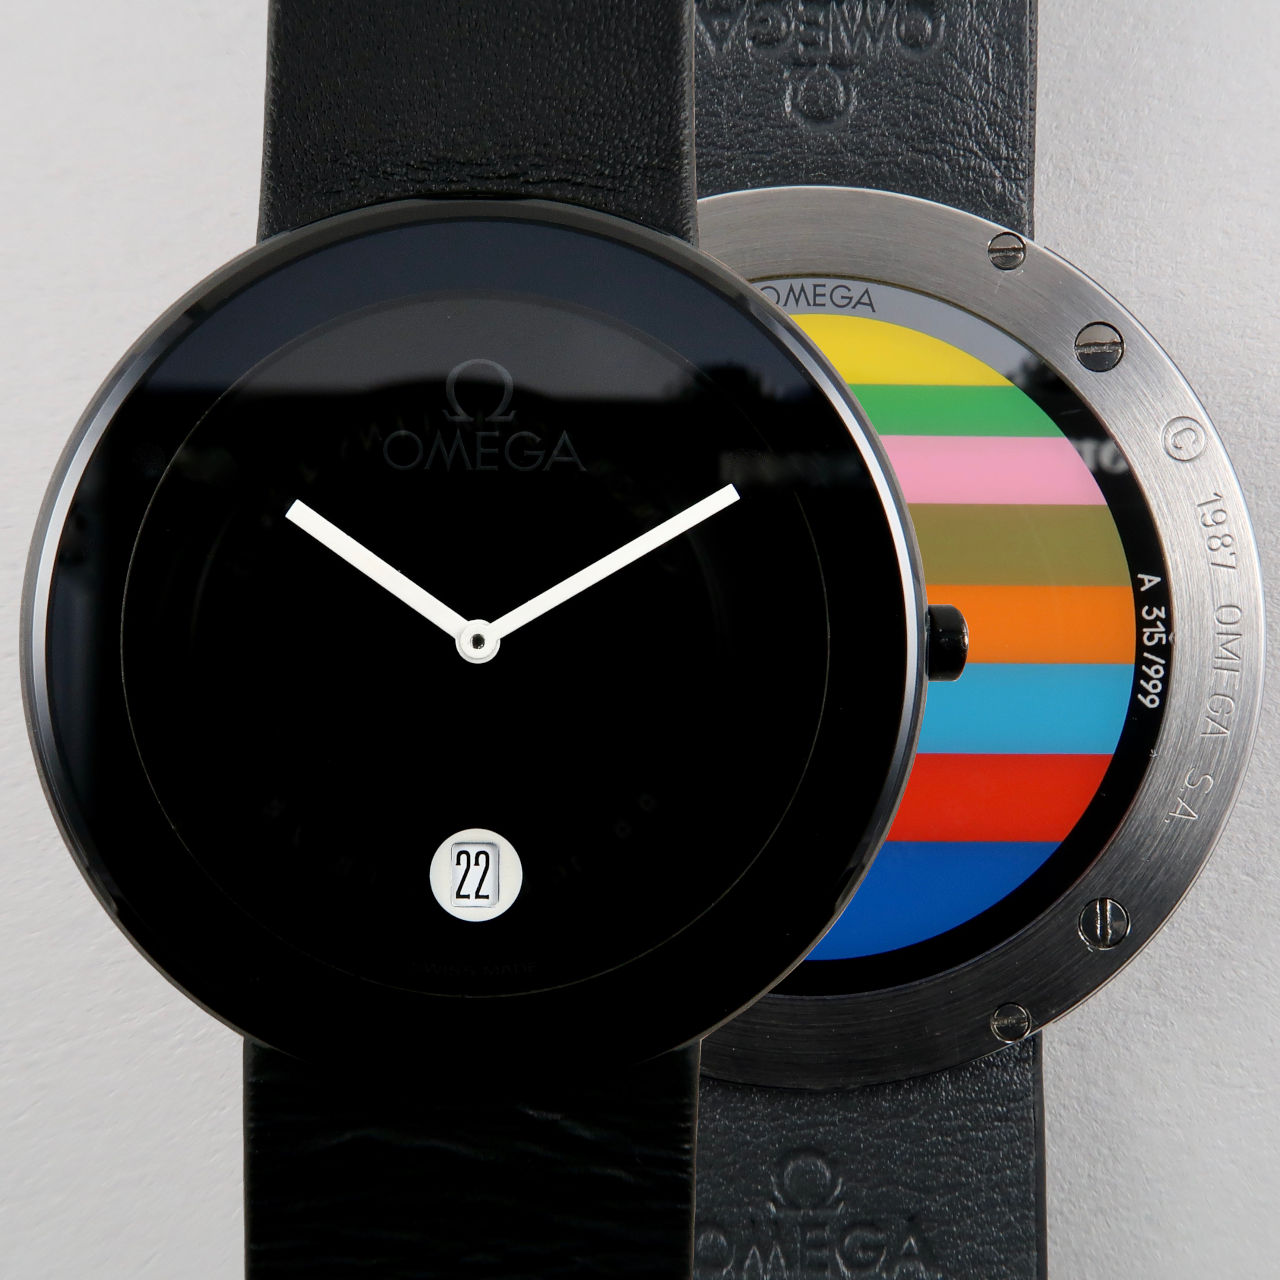 Omega Ref. 196.0440 Kenneth Noland Art Watch